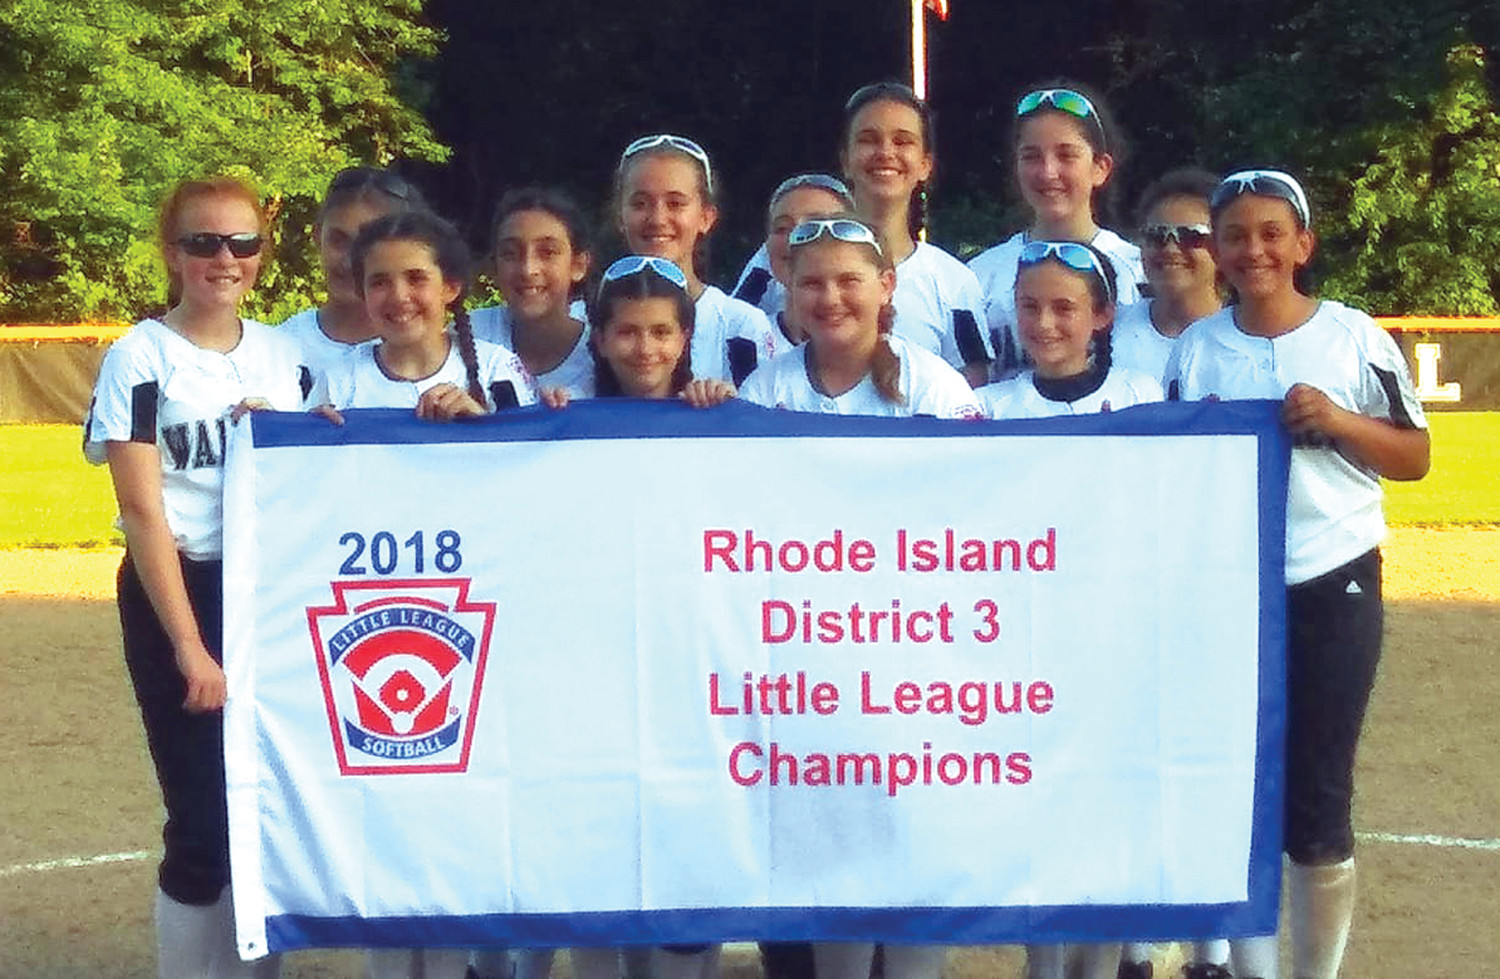 DISTRICT CHAMPS: The Warwick Little League North softball team after winning the District 3 Championship. Members include: Emma Burr, Genna D'Amato, Lily Dewar, Makayla Falco, Julia Krause, Jenna Lucia, Michelle Maron, Audra McDonnell, Alayna Medina, Katie Motta, Kiara Scanlon, Sophia Stogner and Izzy Sullivan.